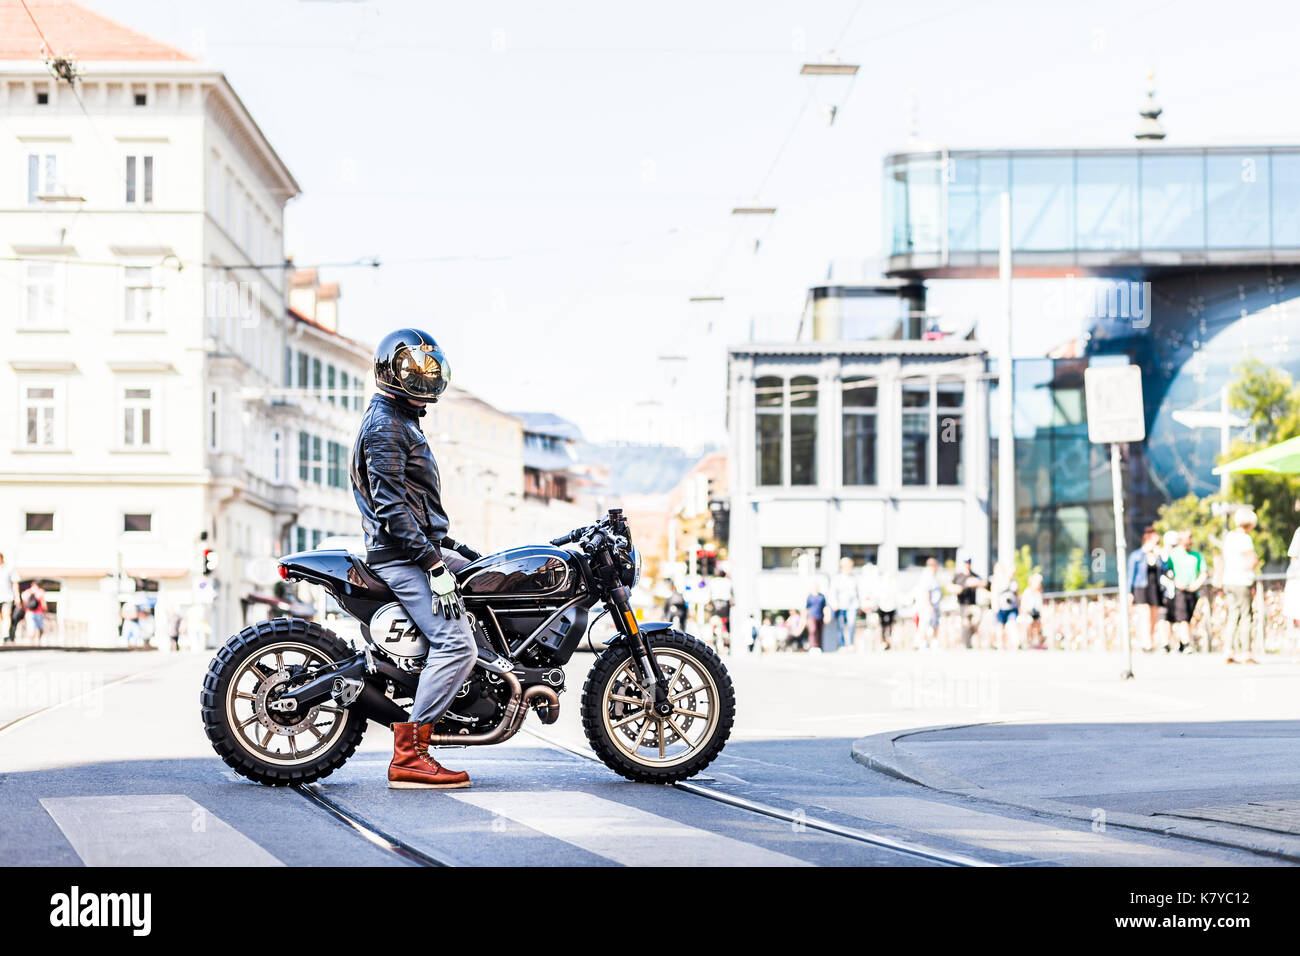 Cool looking motorcycle rider on custom made scrambler style cafe racer in the city - Stock Image